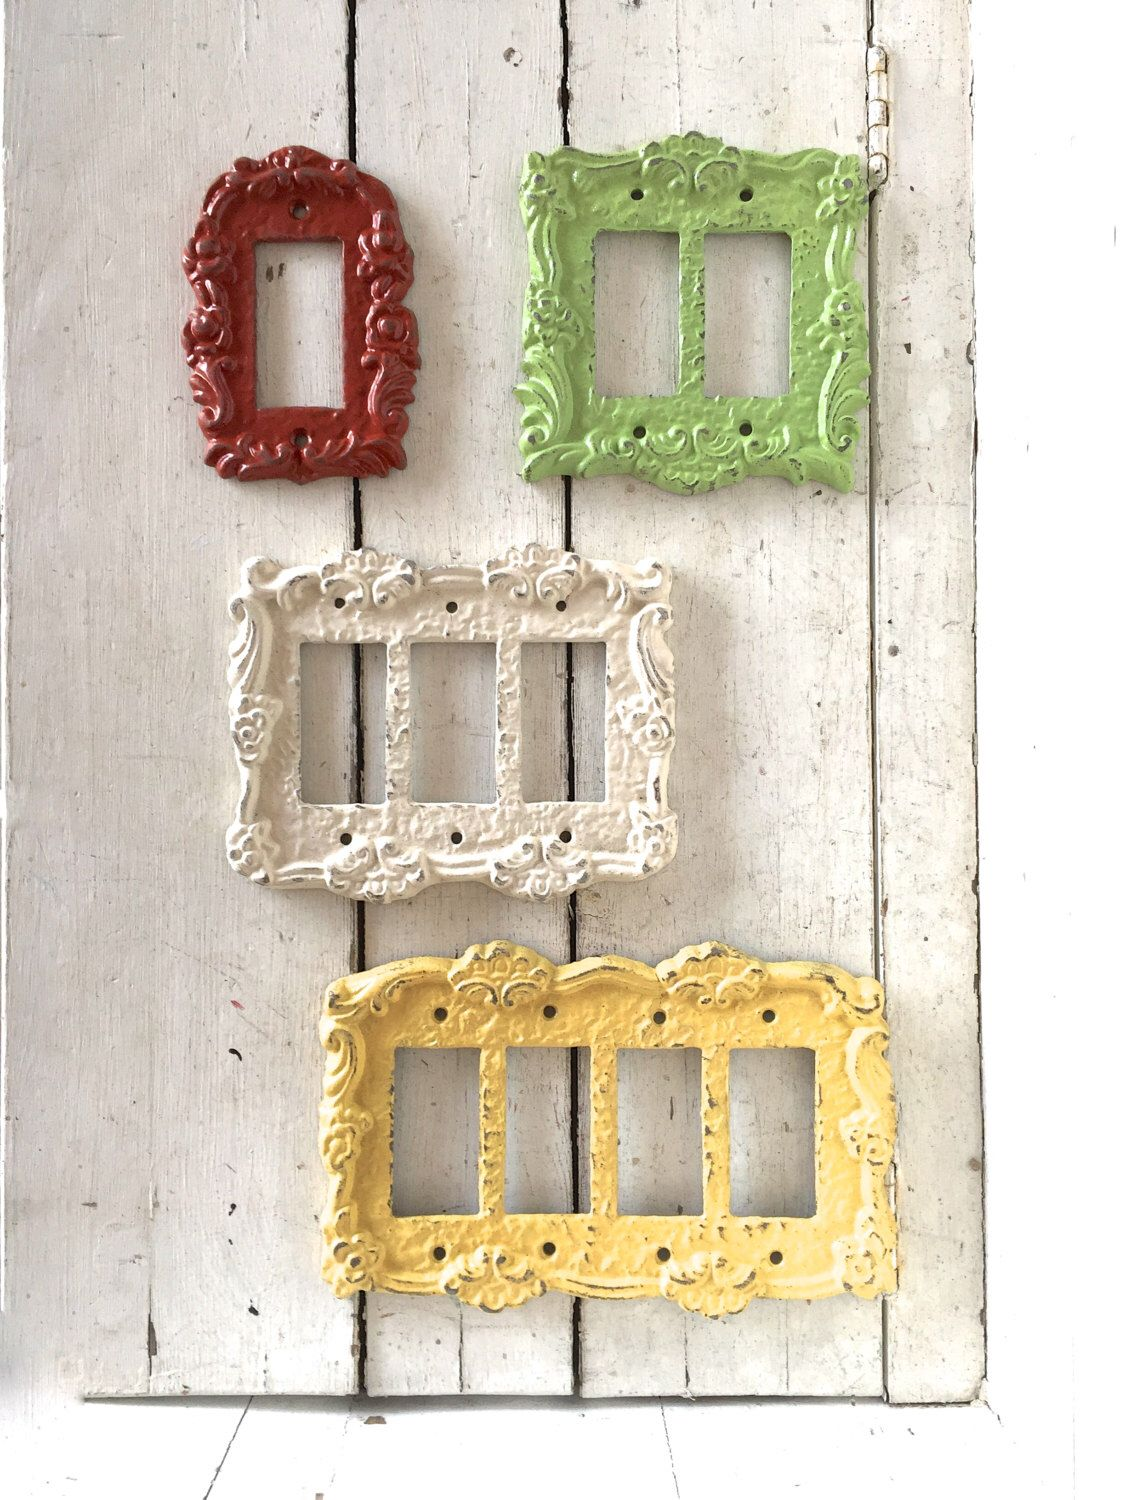 Pin By Kriste Camsky On Decorating Ideas Tips In 2018 Pinterest Triple Light Switch Cover Rocker Plate Double